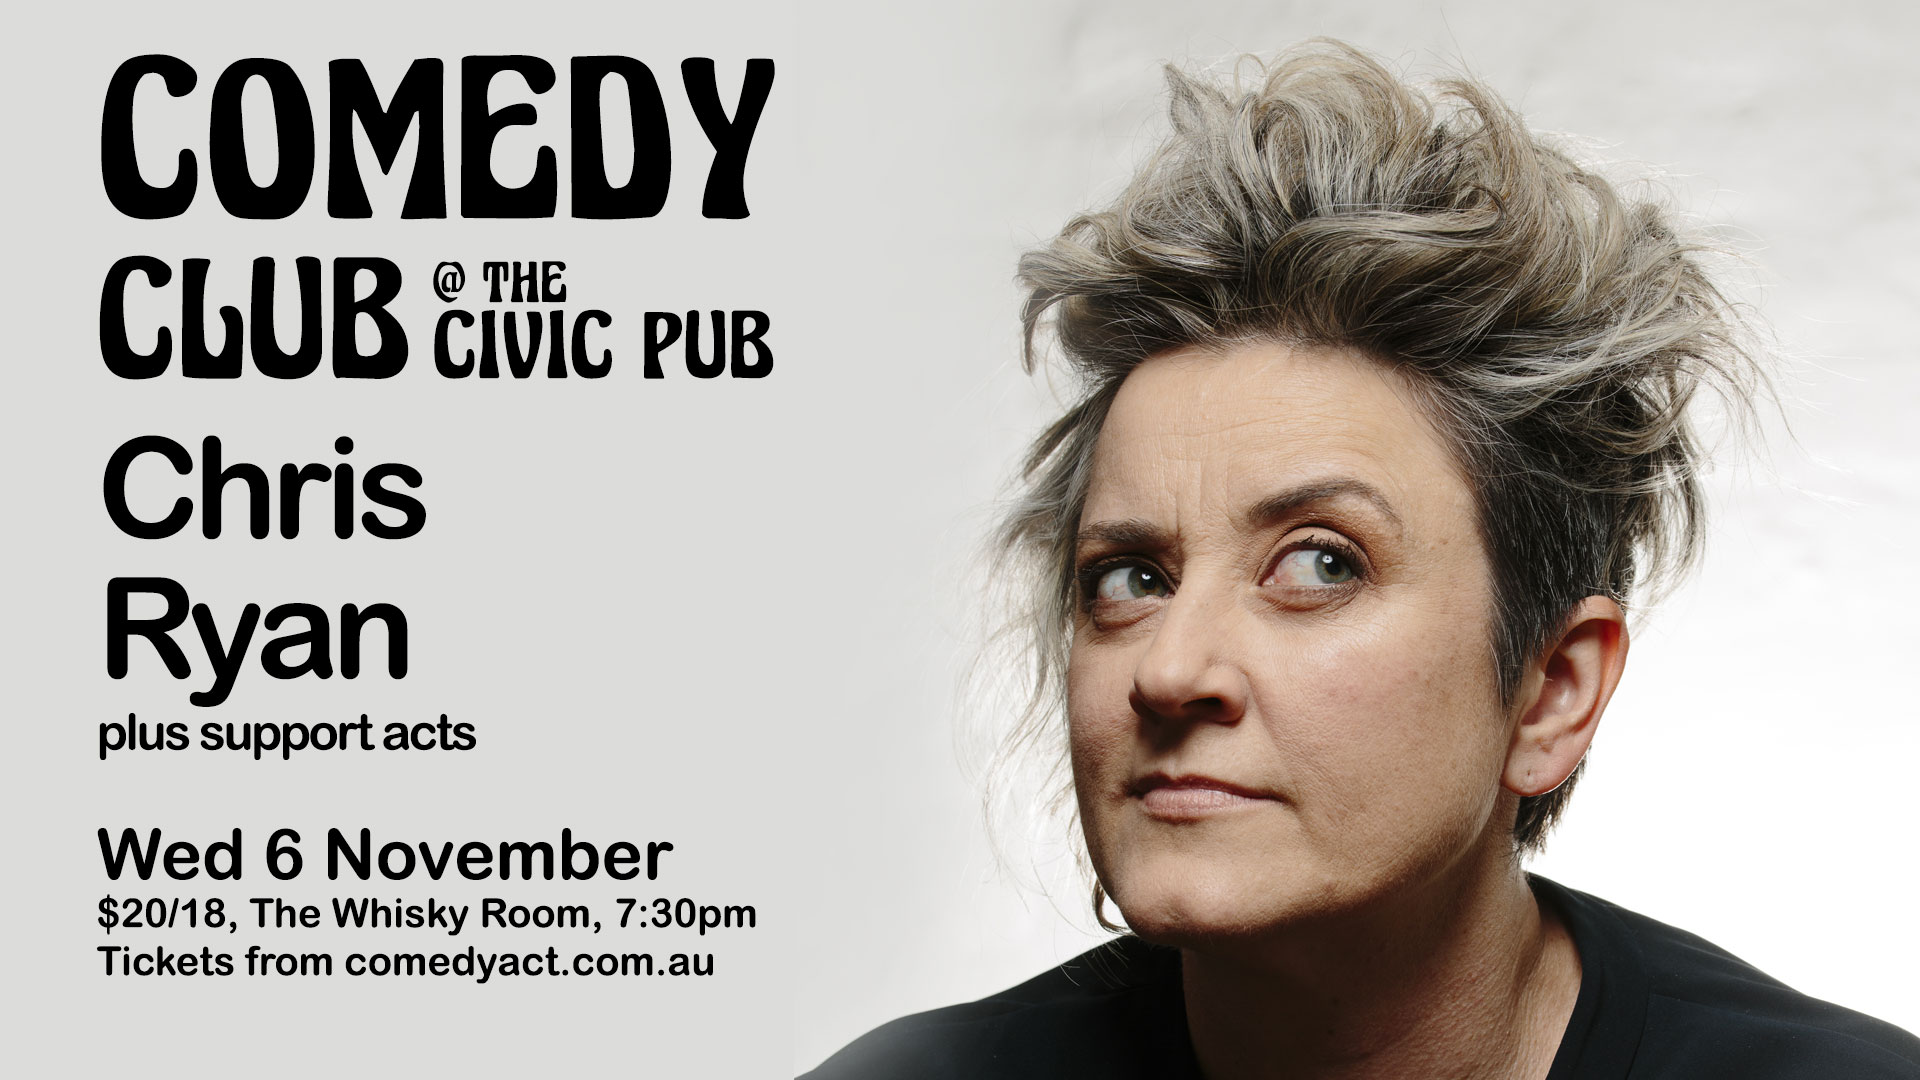 Comedy Club at The Civic Pub featuring Chris Ryan